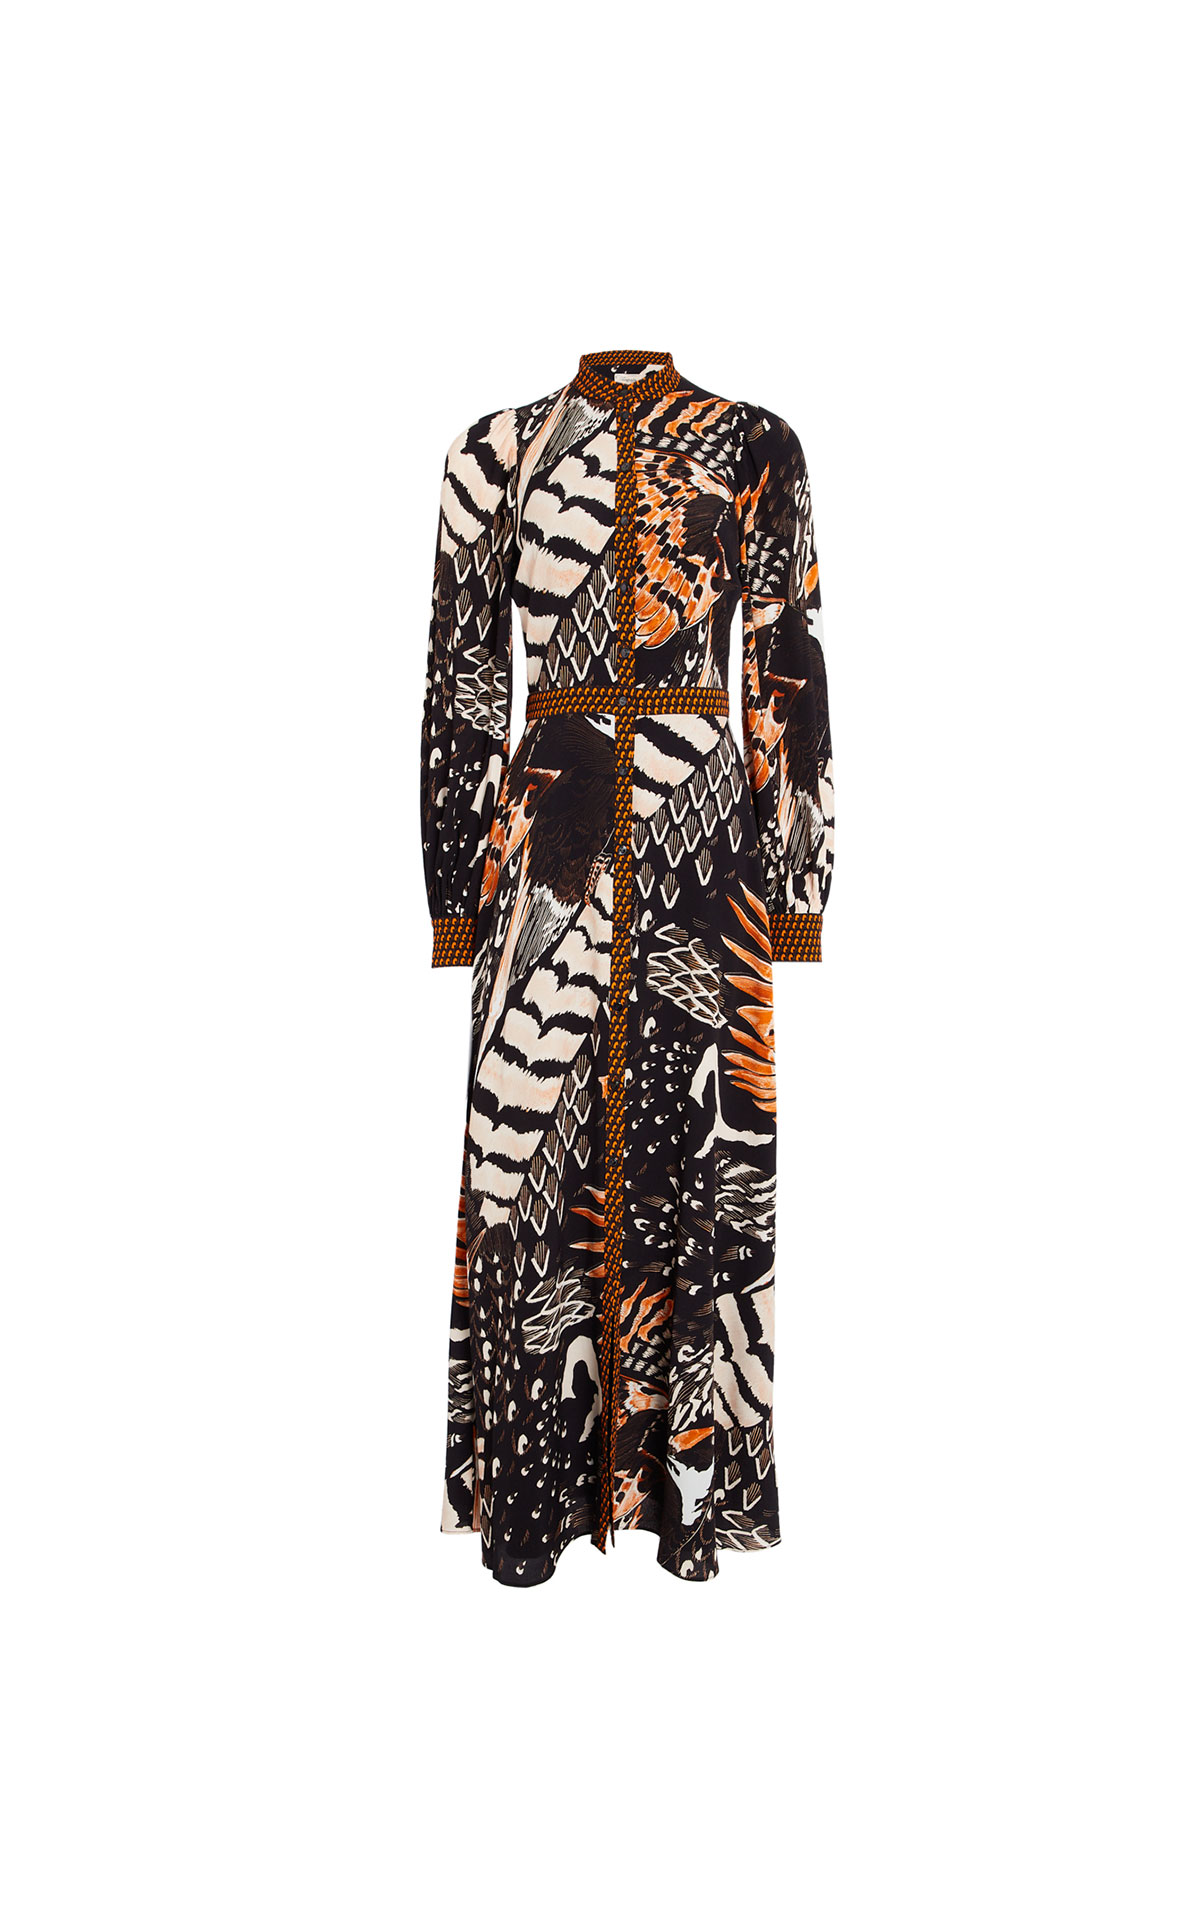 Temperley London Rosela birdie shirt dress from Bicester Village